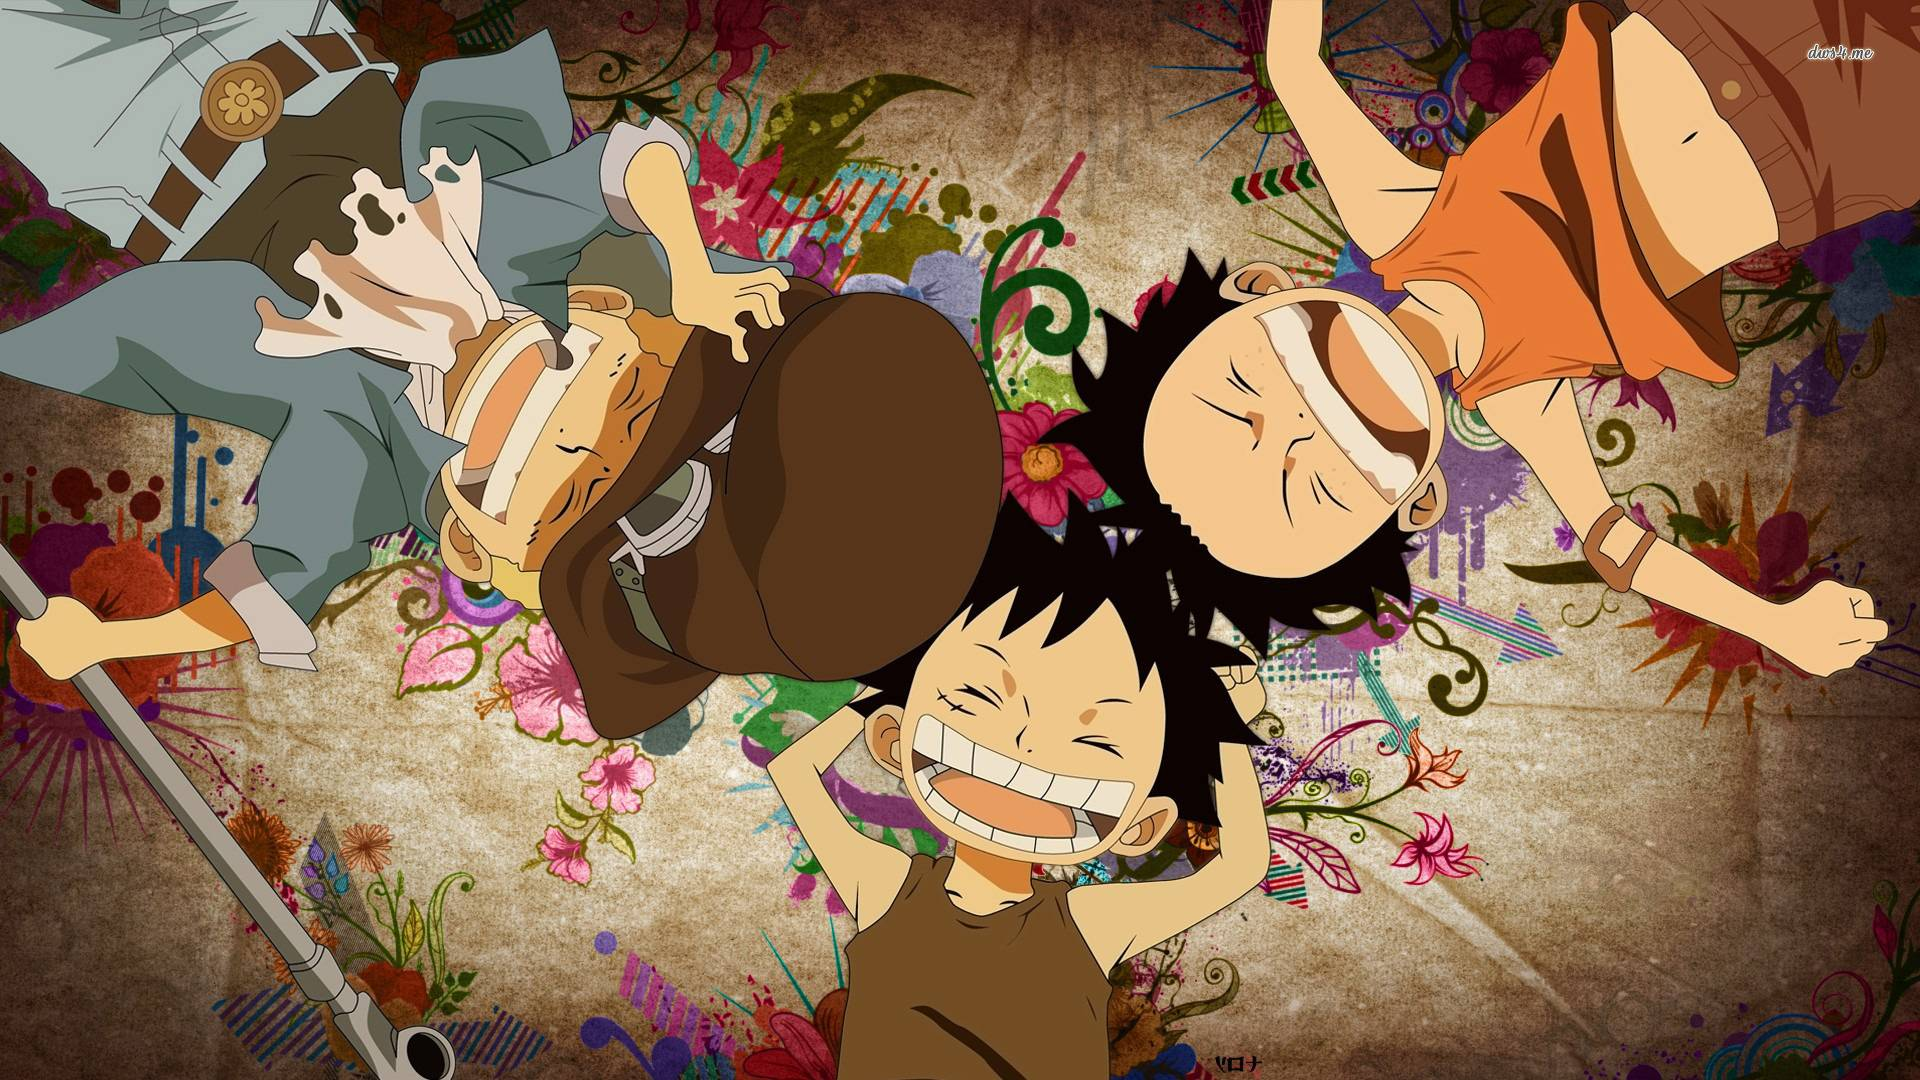 ace and luffy fighting wallpaper - photo #17